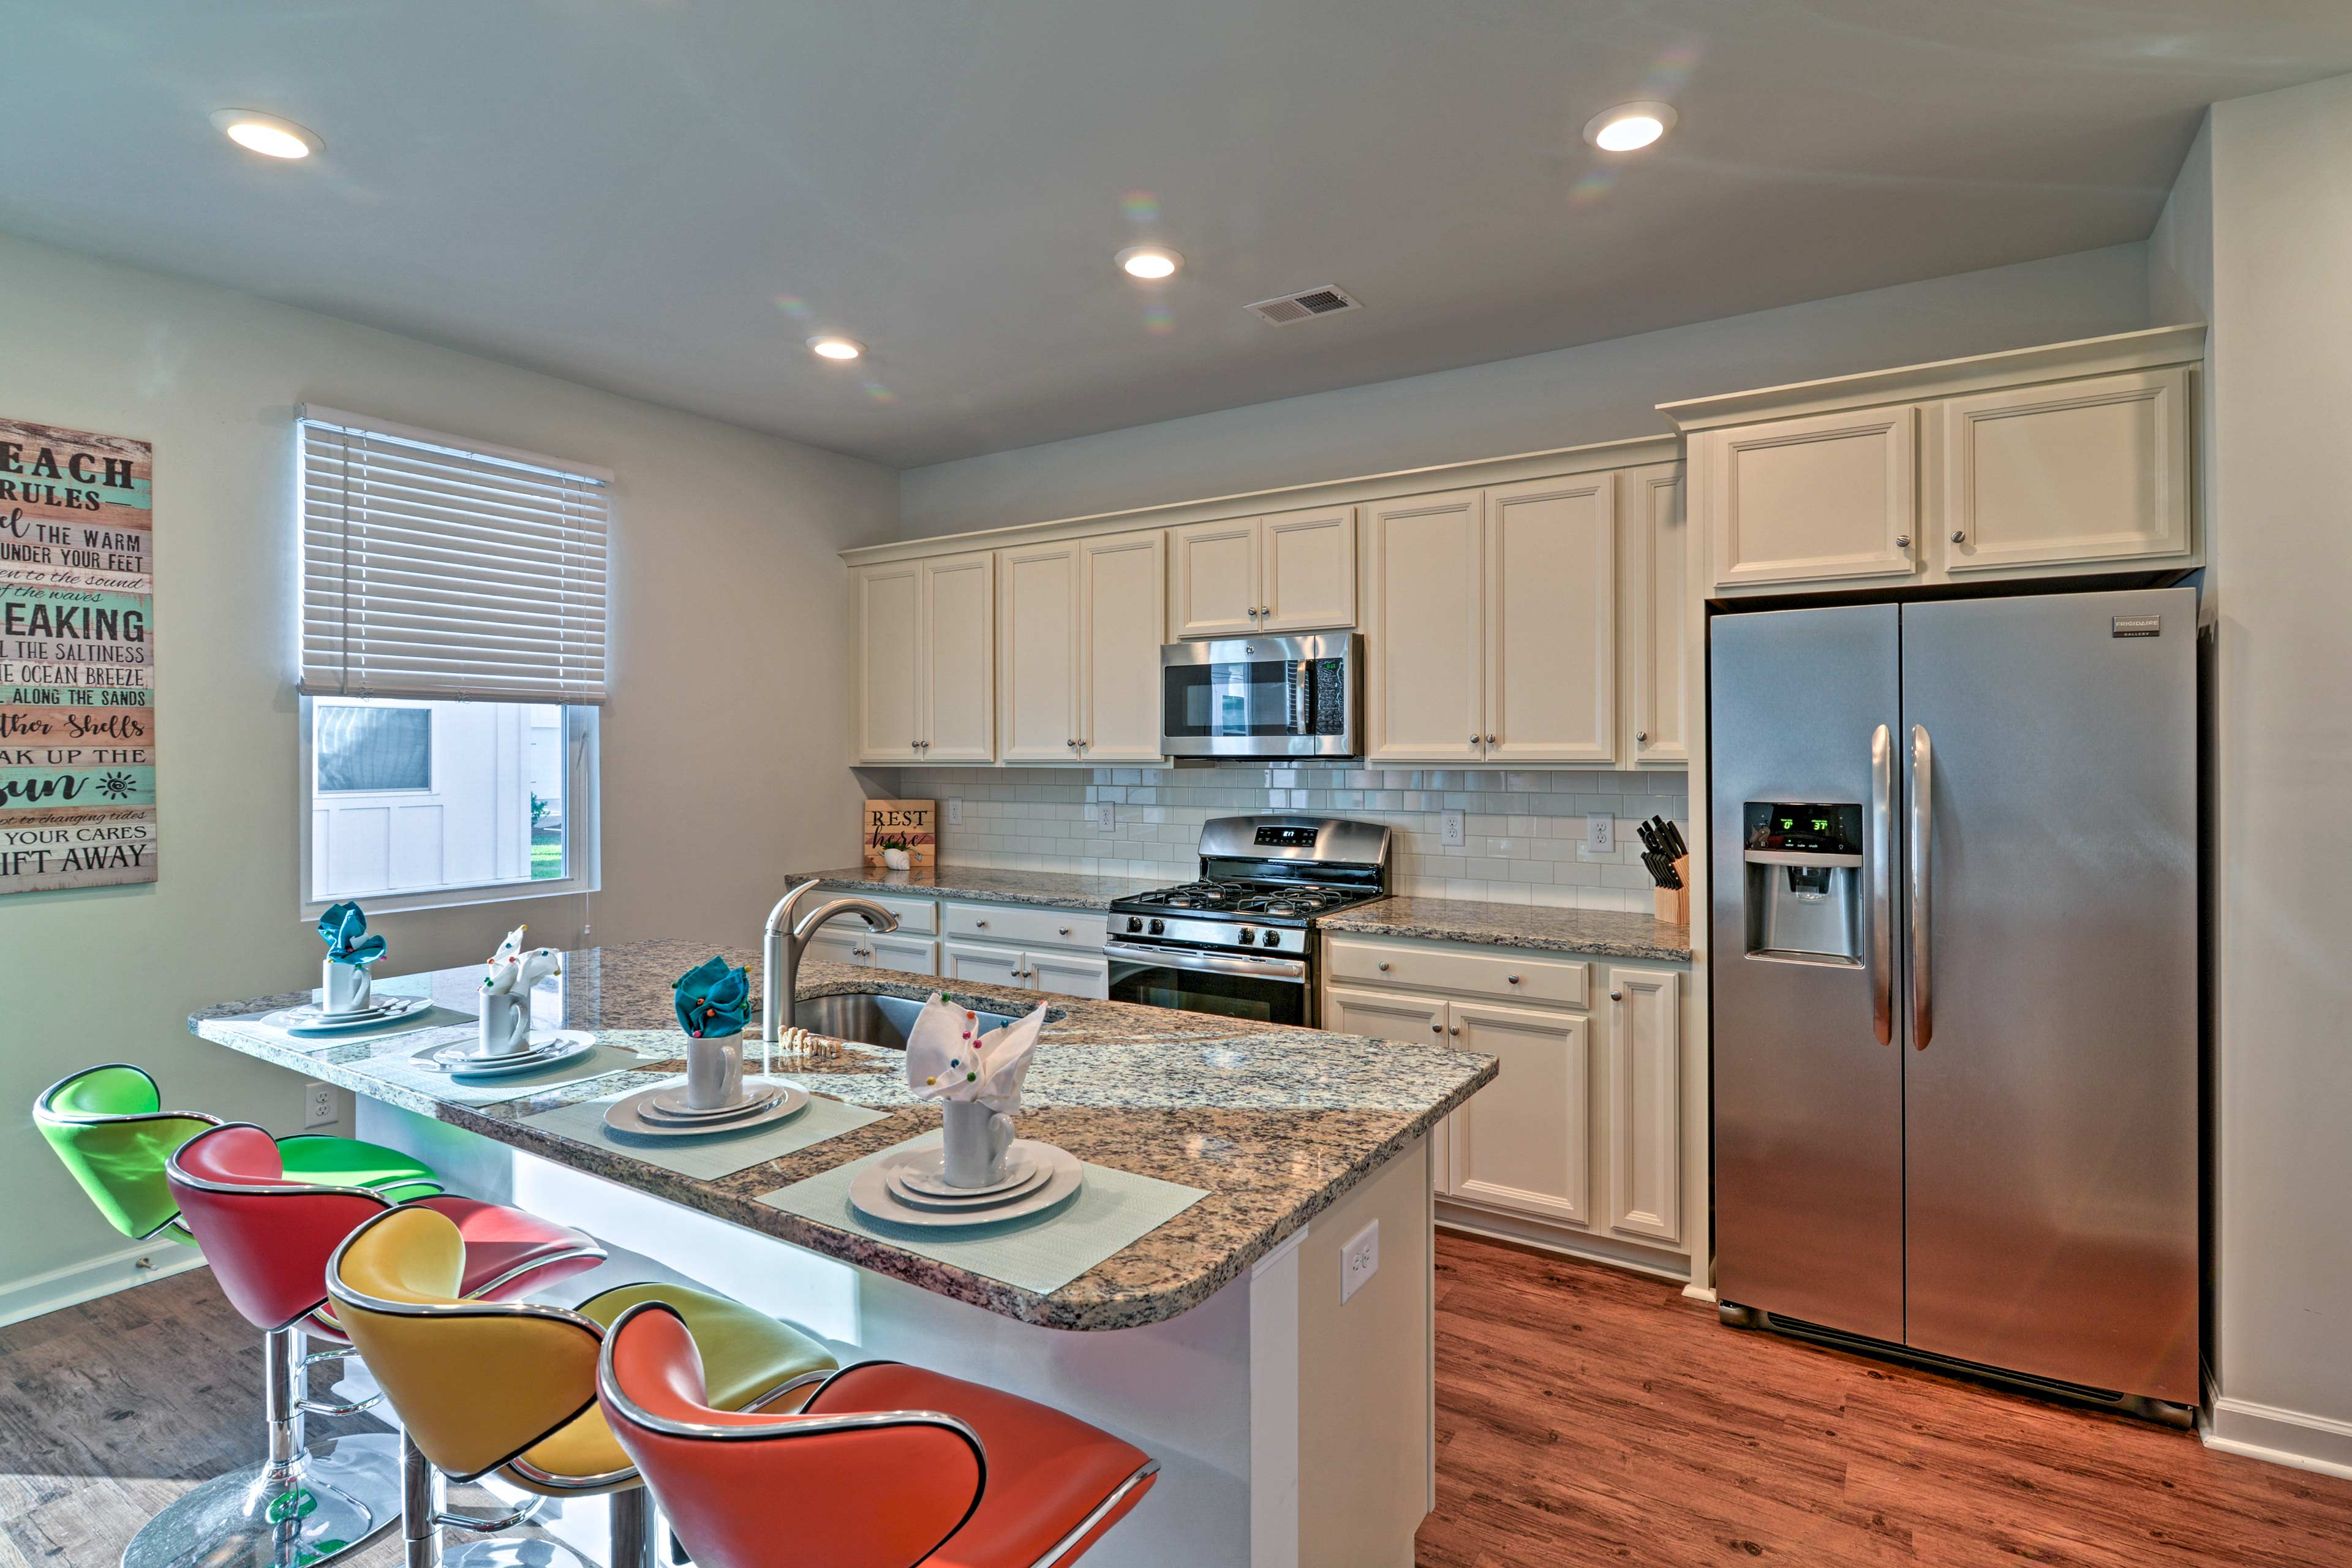 The fully equipped kitchen features stainless steel appliances.